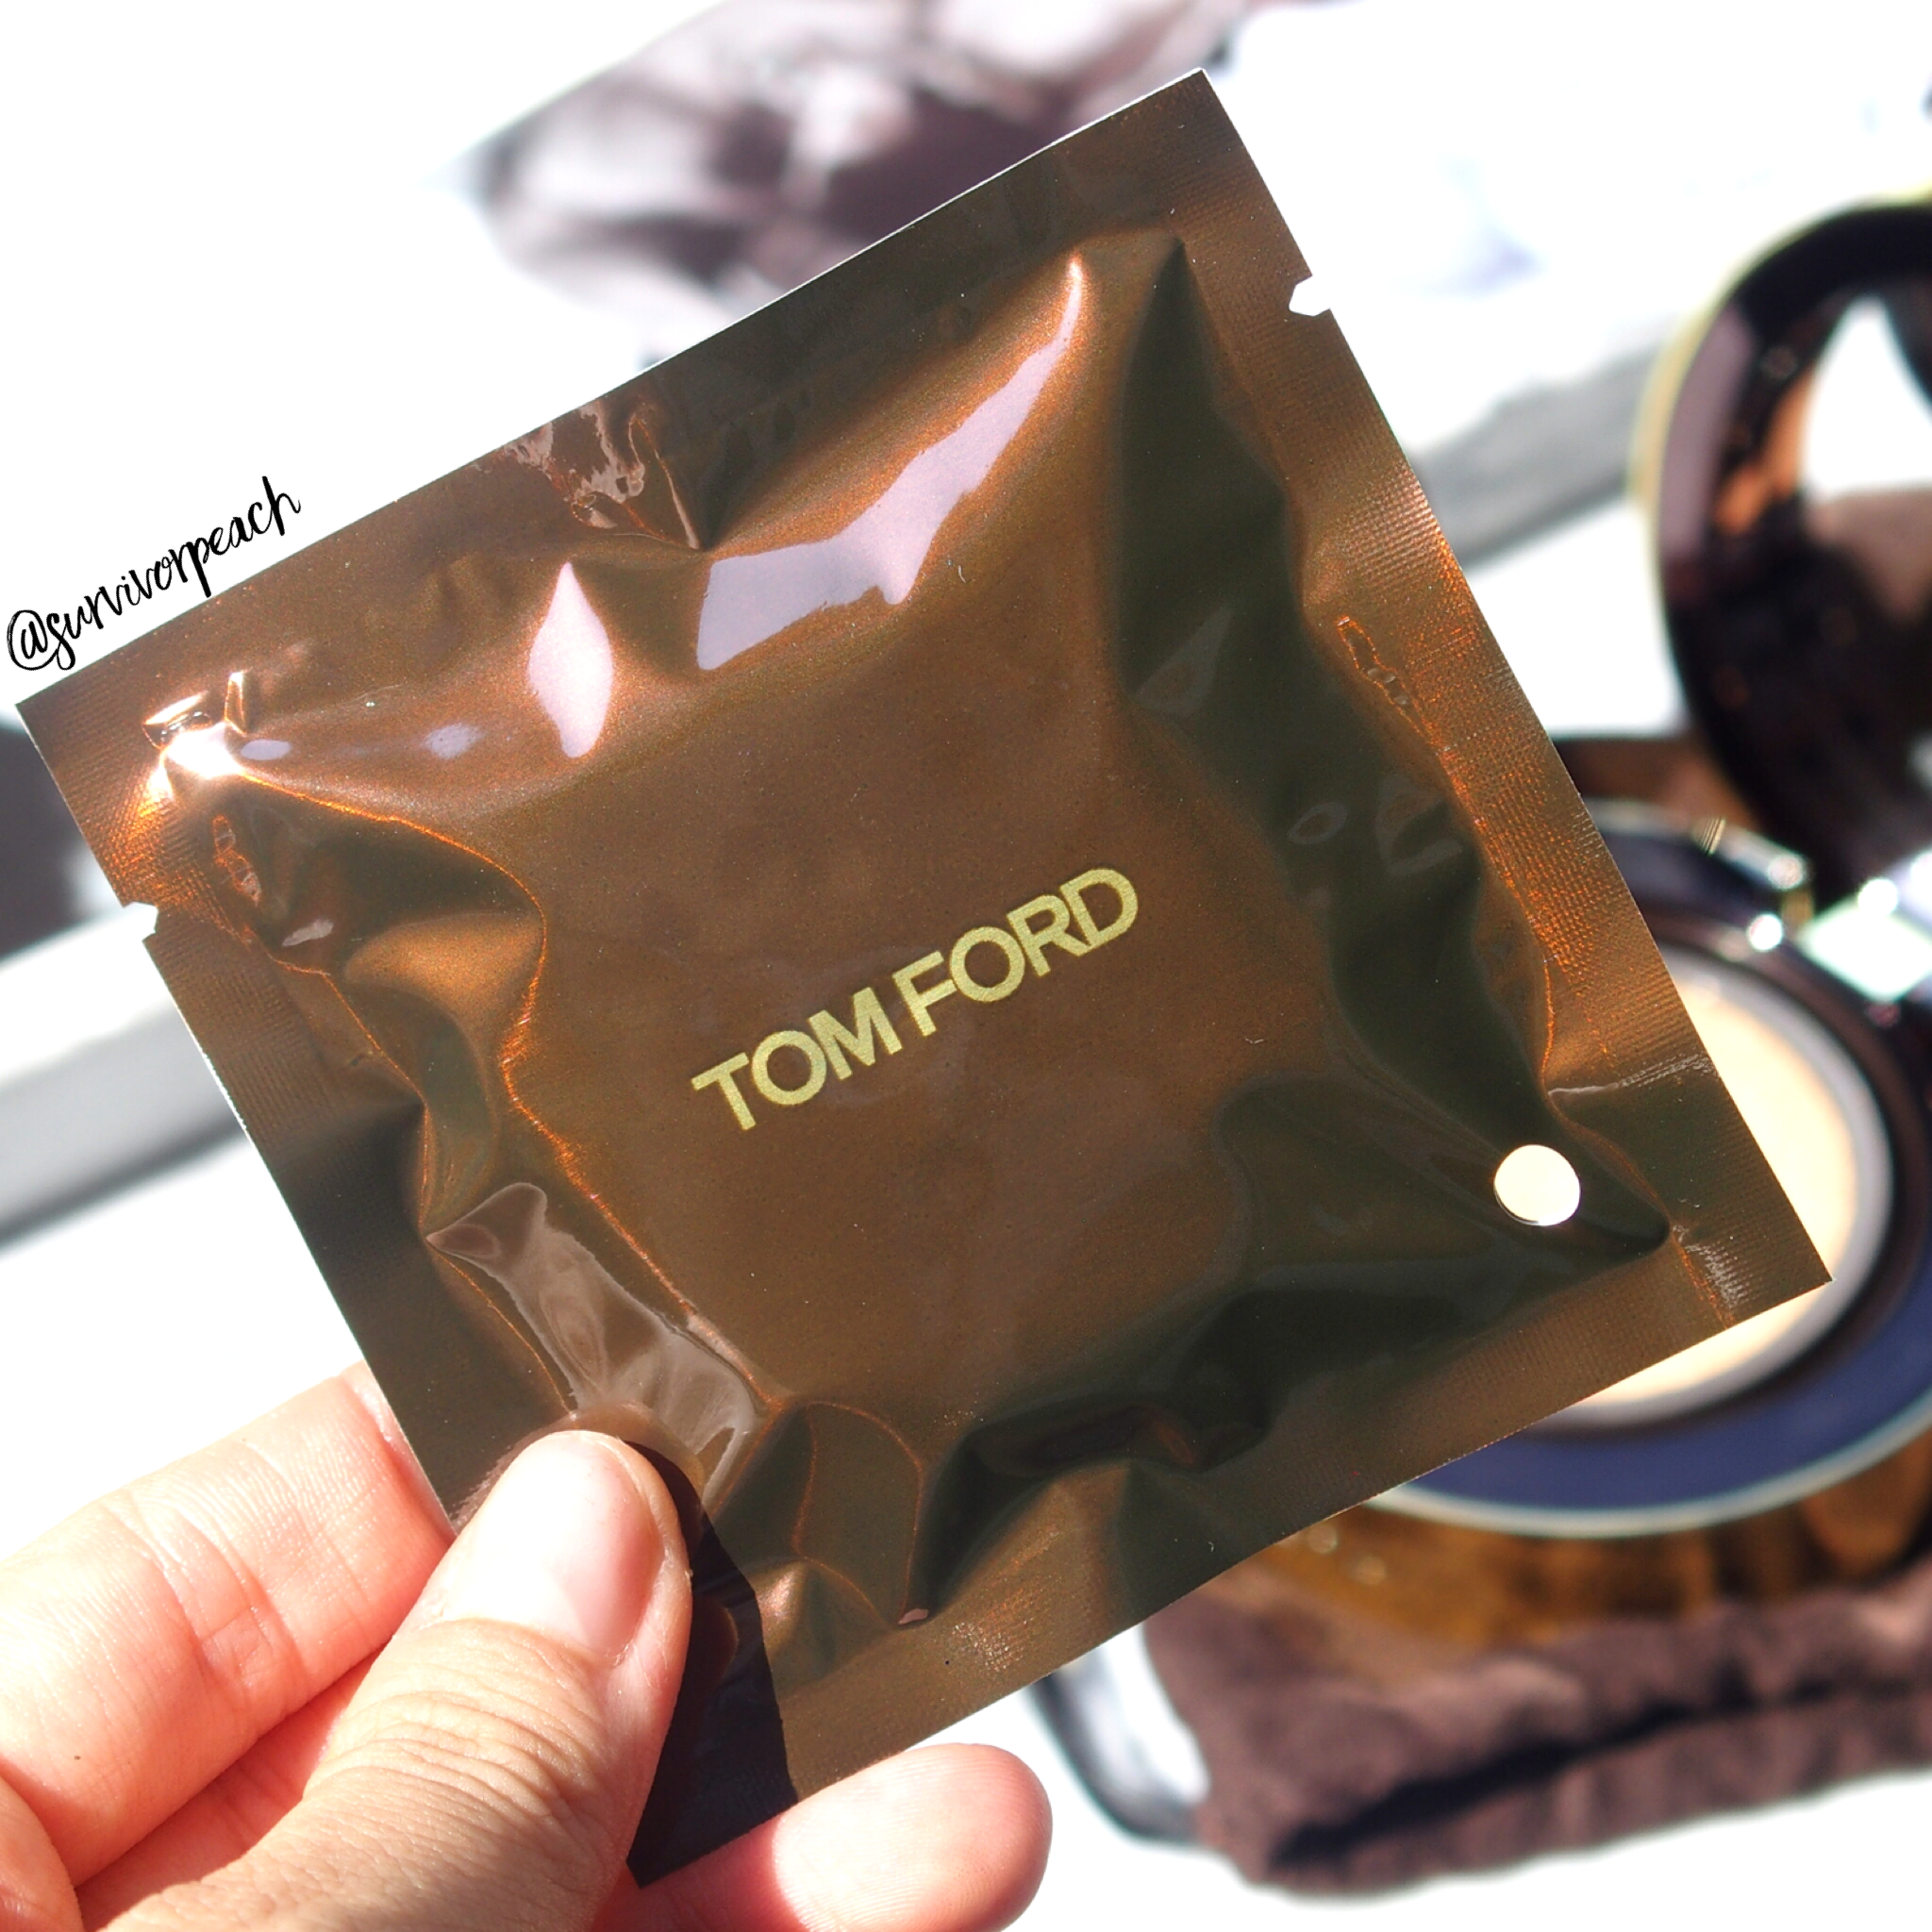 Tom Ford Traceless Touch Cushion puff